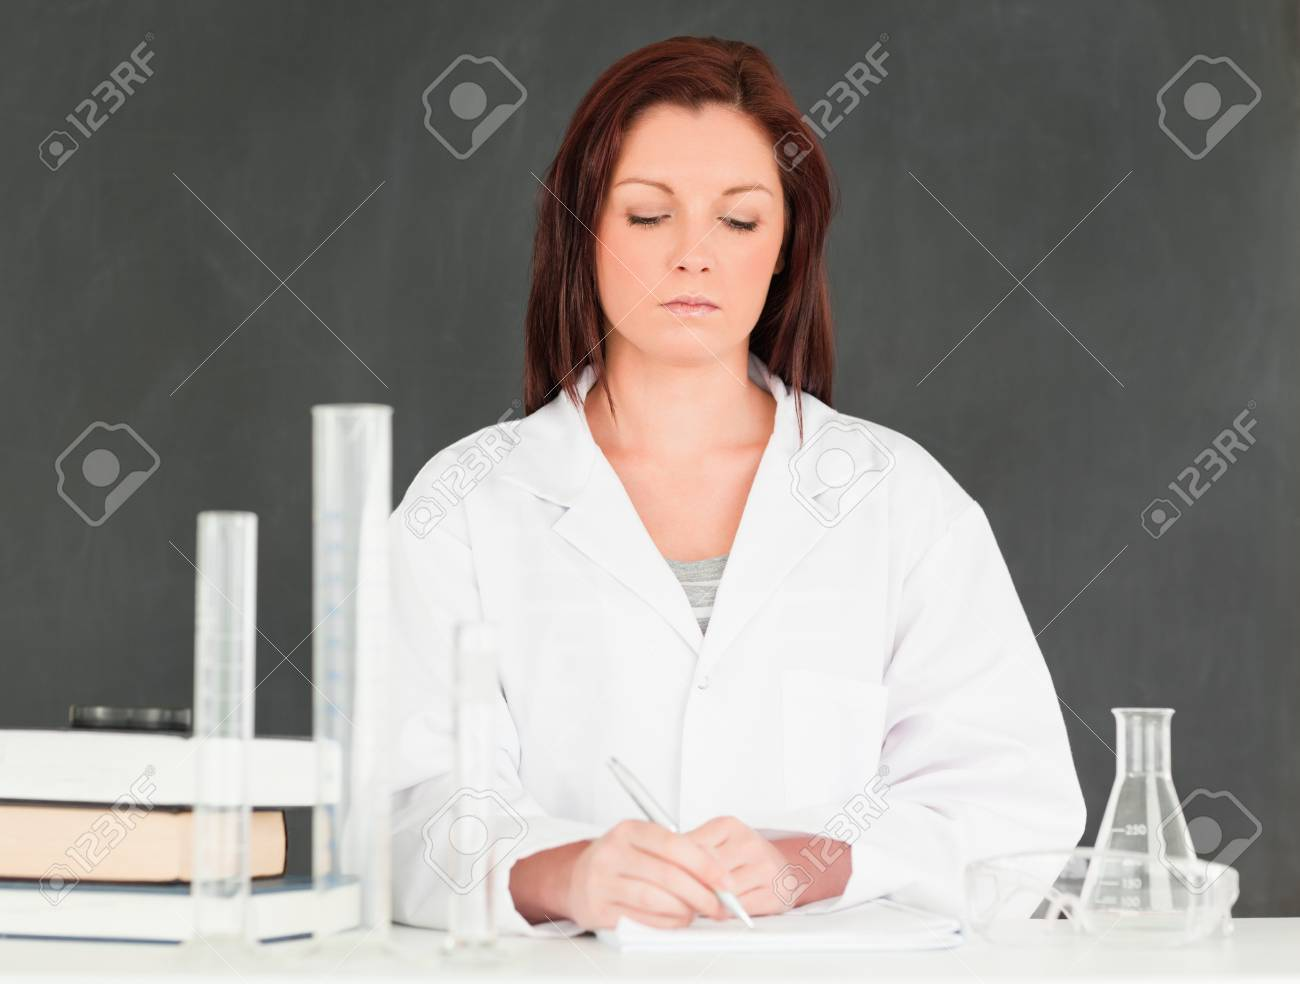 Serious scientist taking notes in a classroom Stock Photo - 10071849